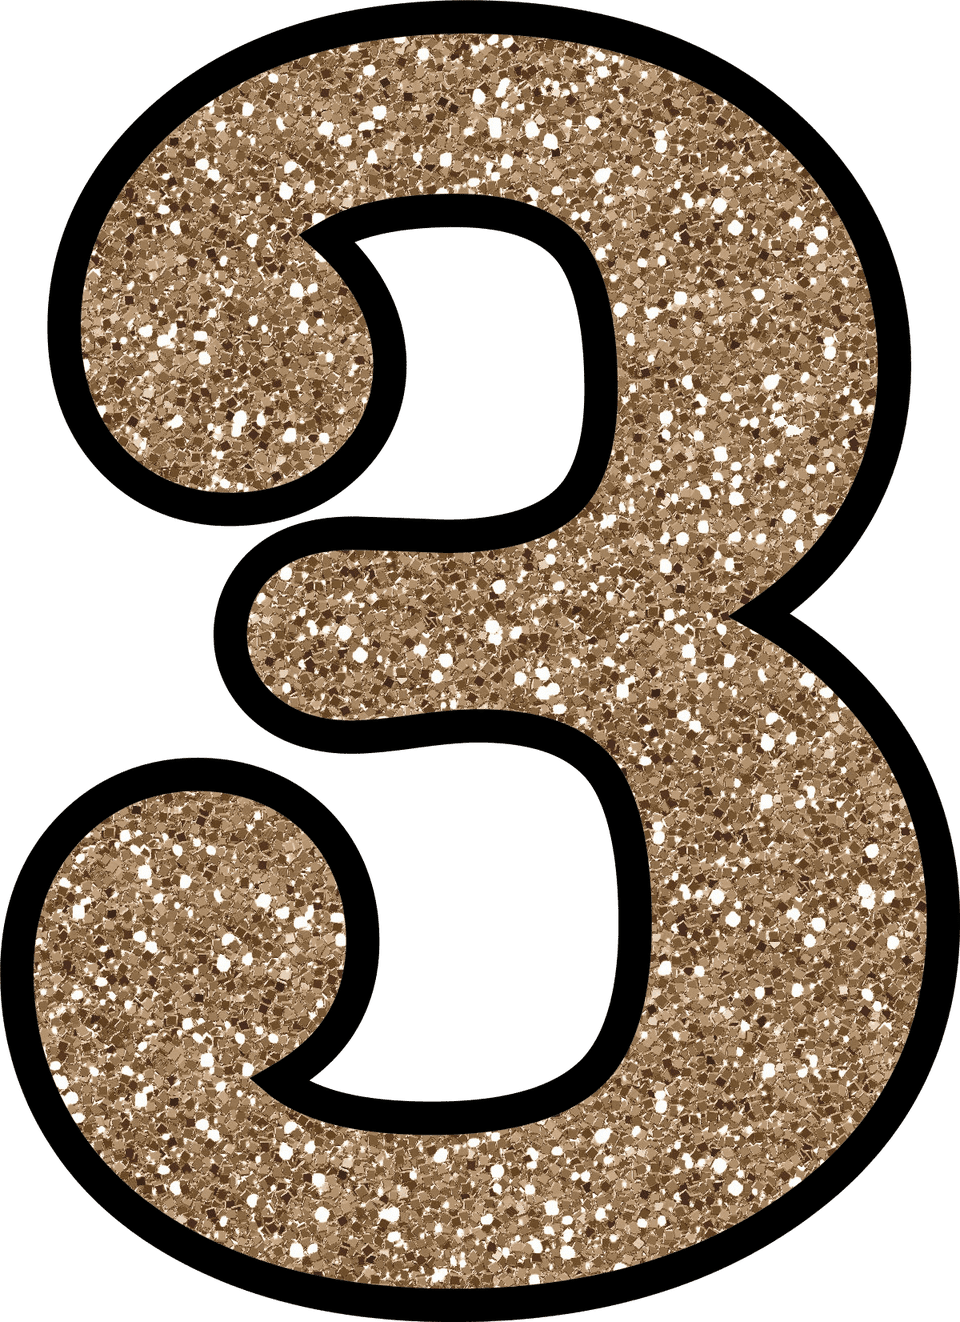 Fancy number 6 clipart black and white download Number 6 clipart sparkle, Number 6 sparkle Transparent FREE for ... black and white download